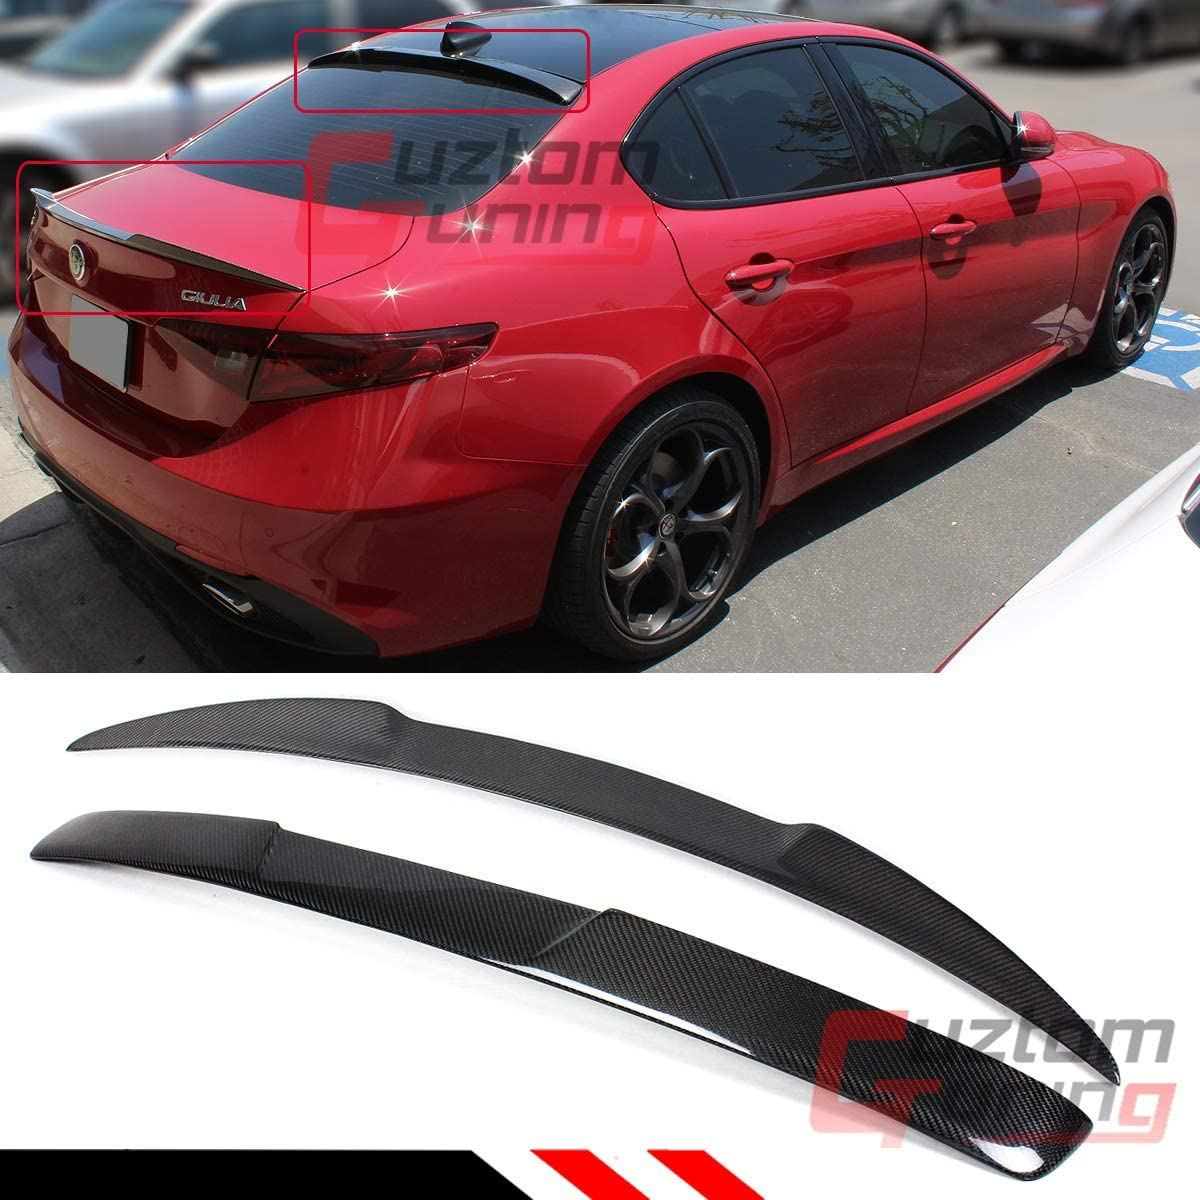 Cuztom Tuning Fits for 2017-22020 Alfa Romeo Giulia Carbon Fiber Rear Window Roof Spoiler + VQ Style Trunk Lid Spoiler